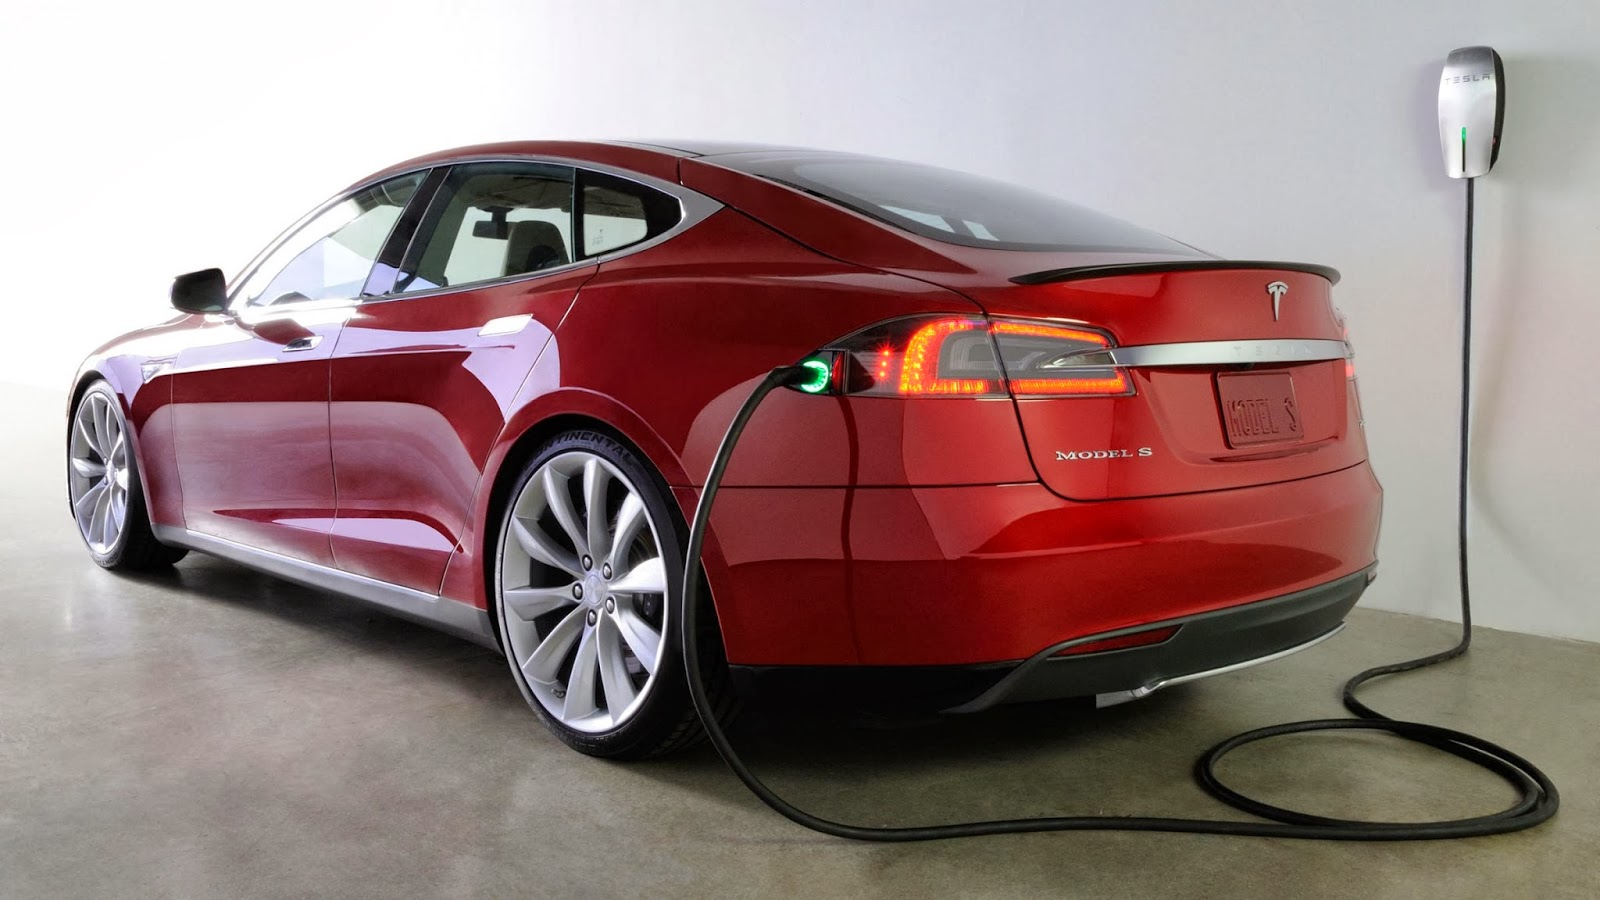 tesla model s electric car the most efficient and powerful. Black Bedroom Furniture Sets. Home Design Ideas